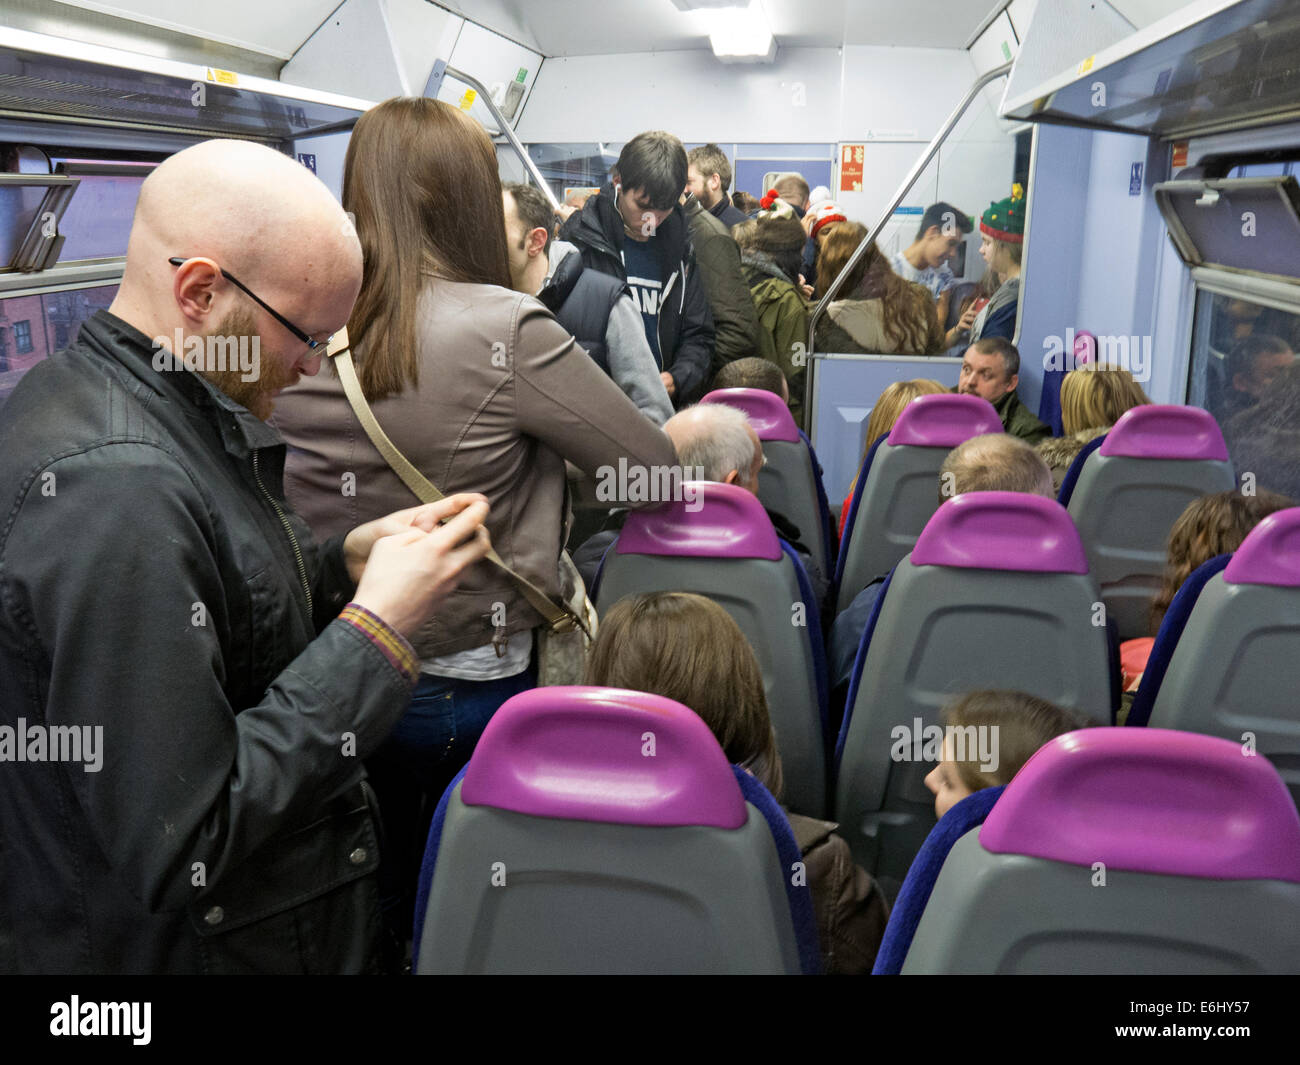 Manchester,Piccadilly,Oxford,rd,Road,Liverpool,Lime,St,street,suburban,urban,trains,packed,purple,seat,seats,backs,seatbacks,BR,British,Rail,britishrail,subsidy,city,centre,commuter,travel,travelers,revelers,people,going,to,work,morning,evening,dark,British,train,operating,company,owned,by,Serco,Gotonysmith,Serco-Abellio,Abellio,SercoAbellio,service,services,Britain,system,network,rail,railway,Cheshire,County Durham,Cumbria,Greater Manchester,Lancashire,Merseyside,Northumberland,Teesside,Tyne,and,Wear,and,Yorkshire.,Northerns,services,also,extend,to,the,north,Midland,counties,of,Derbyshire,Lincolnshire,Nottinghamshire,and,Staffordshire.,Most,services,are,supported,by,passenger,transport,executives.,Of,all,Train,Operating,Companies,in,the,UK,Northern,Rail,operates,the,most,stations,Serco-NedRailways,NedRailways,Class,142,Pacers,Secretary,of,State,for,transport,express,slower,route,routes,Operator,of,the,Year,2007,national,NR,150,150s,inside,interior,151,sprinter,sprinters,Diesel,multiple,unit,units,electric